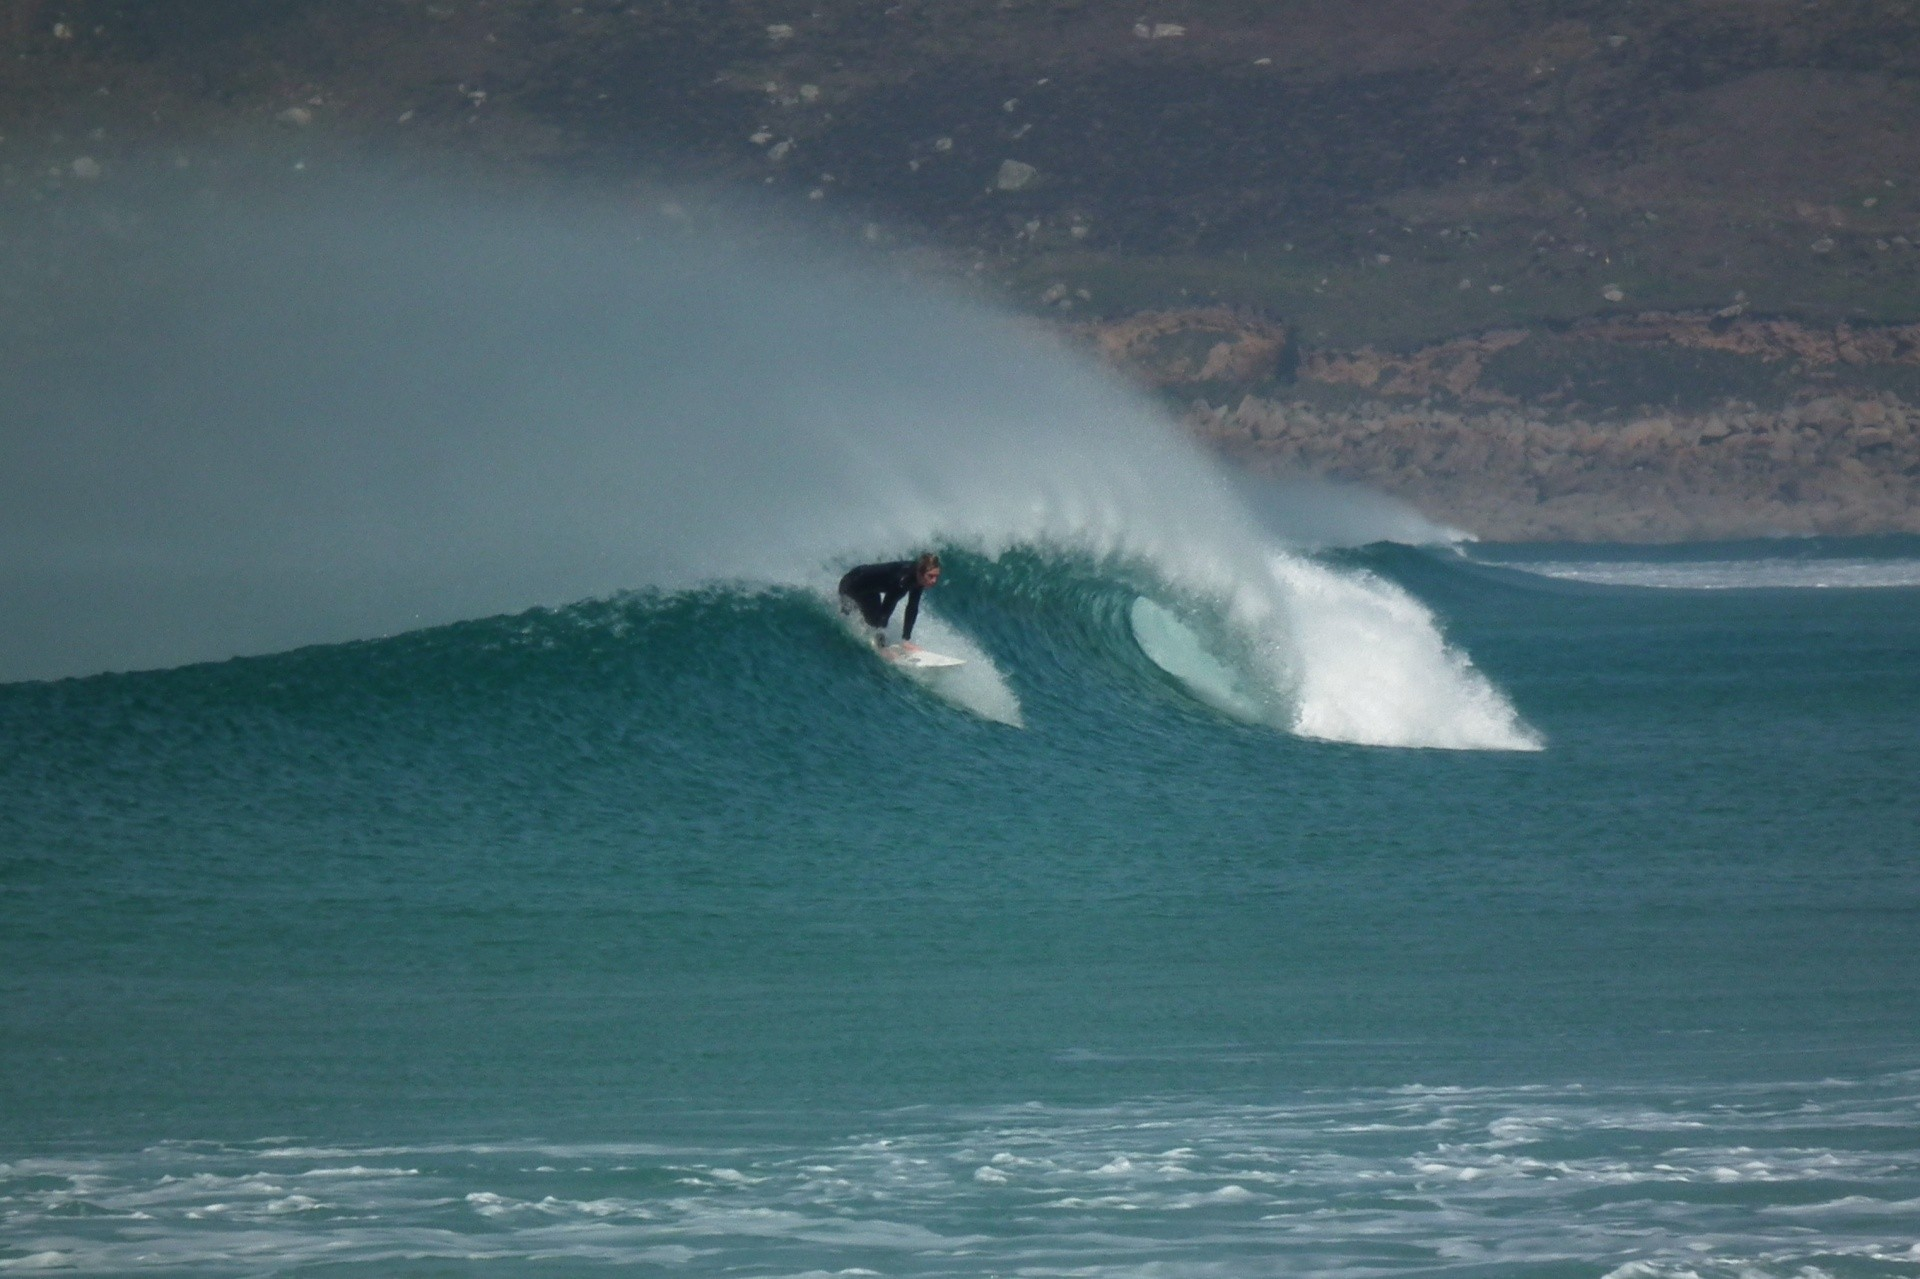 si wells's photo of Sennen